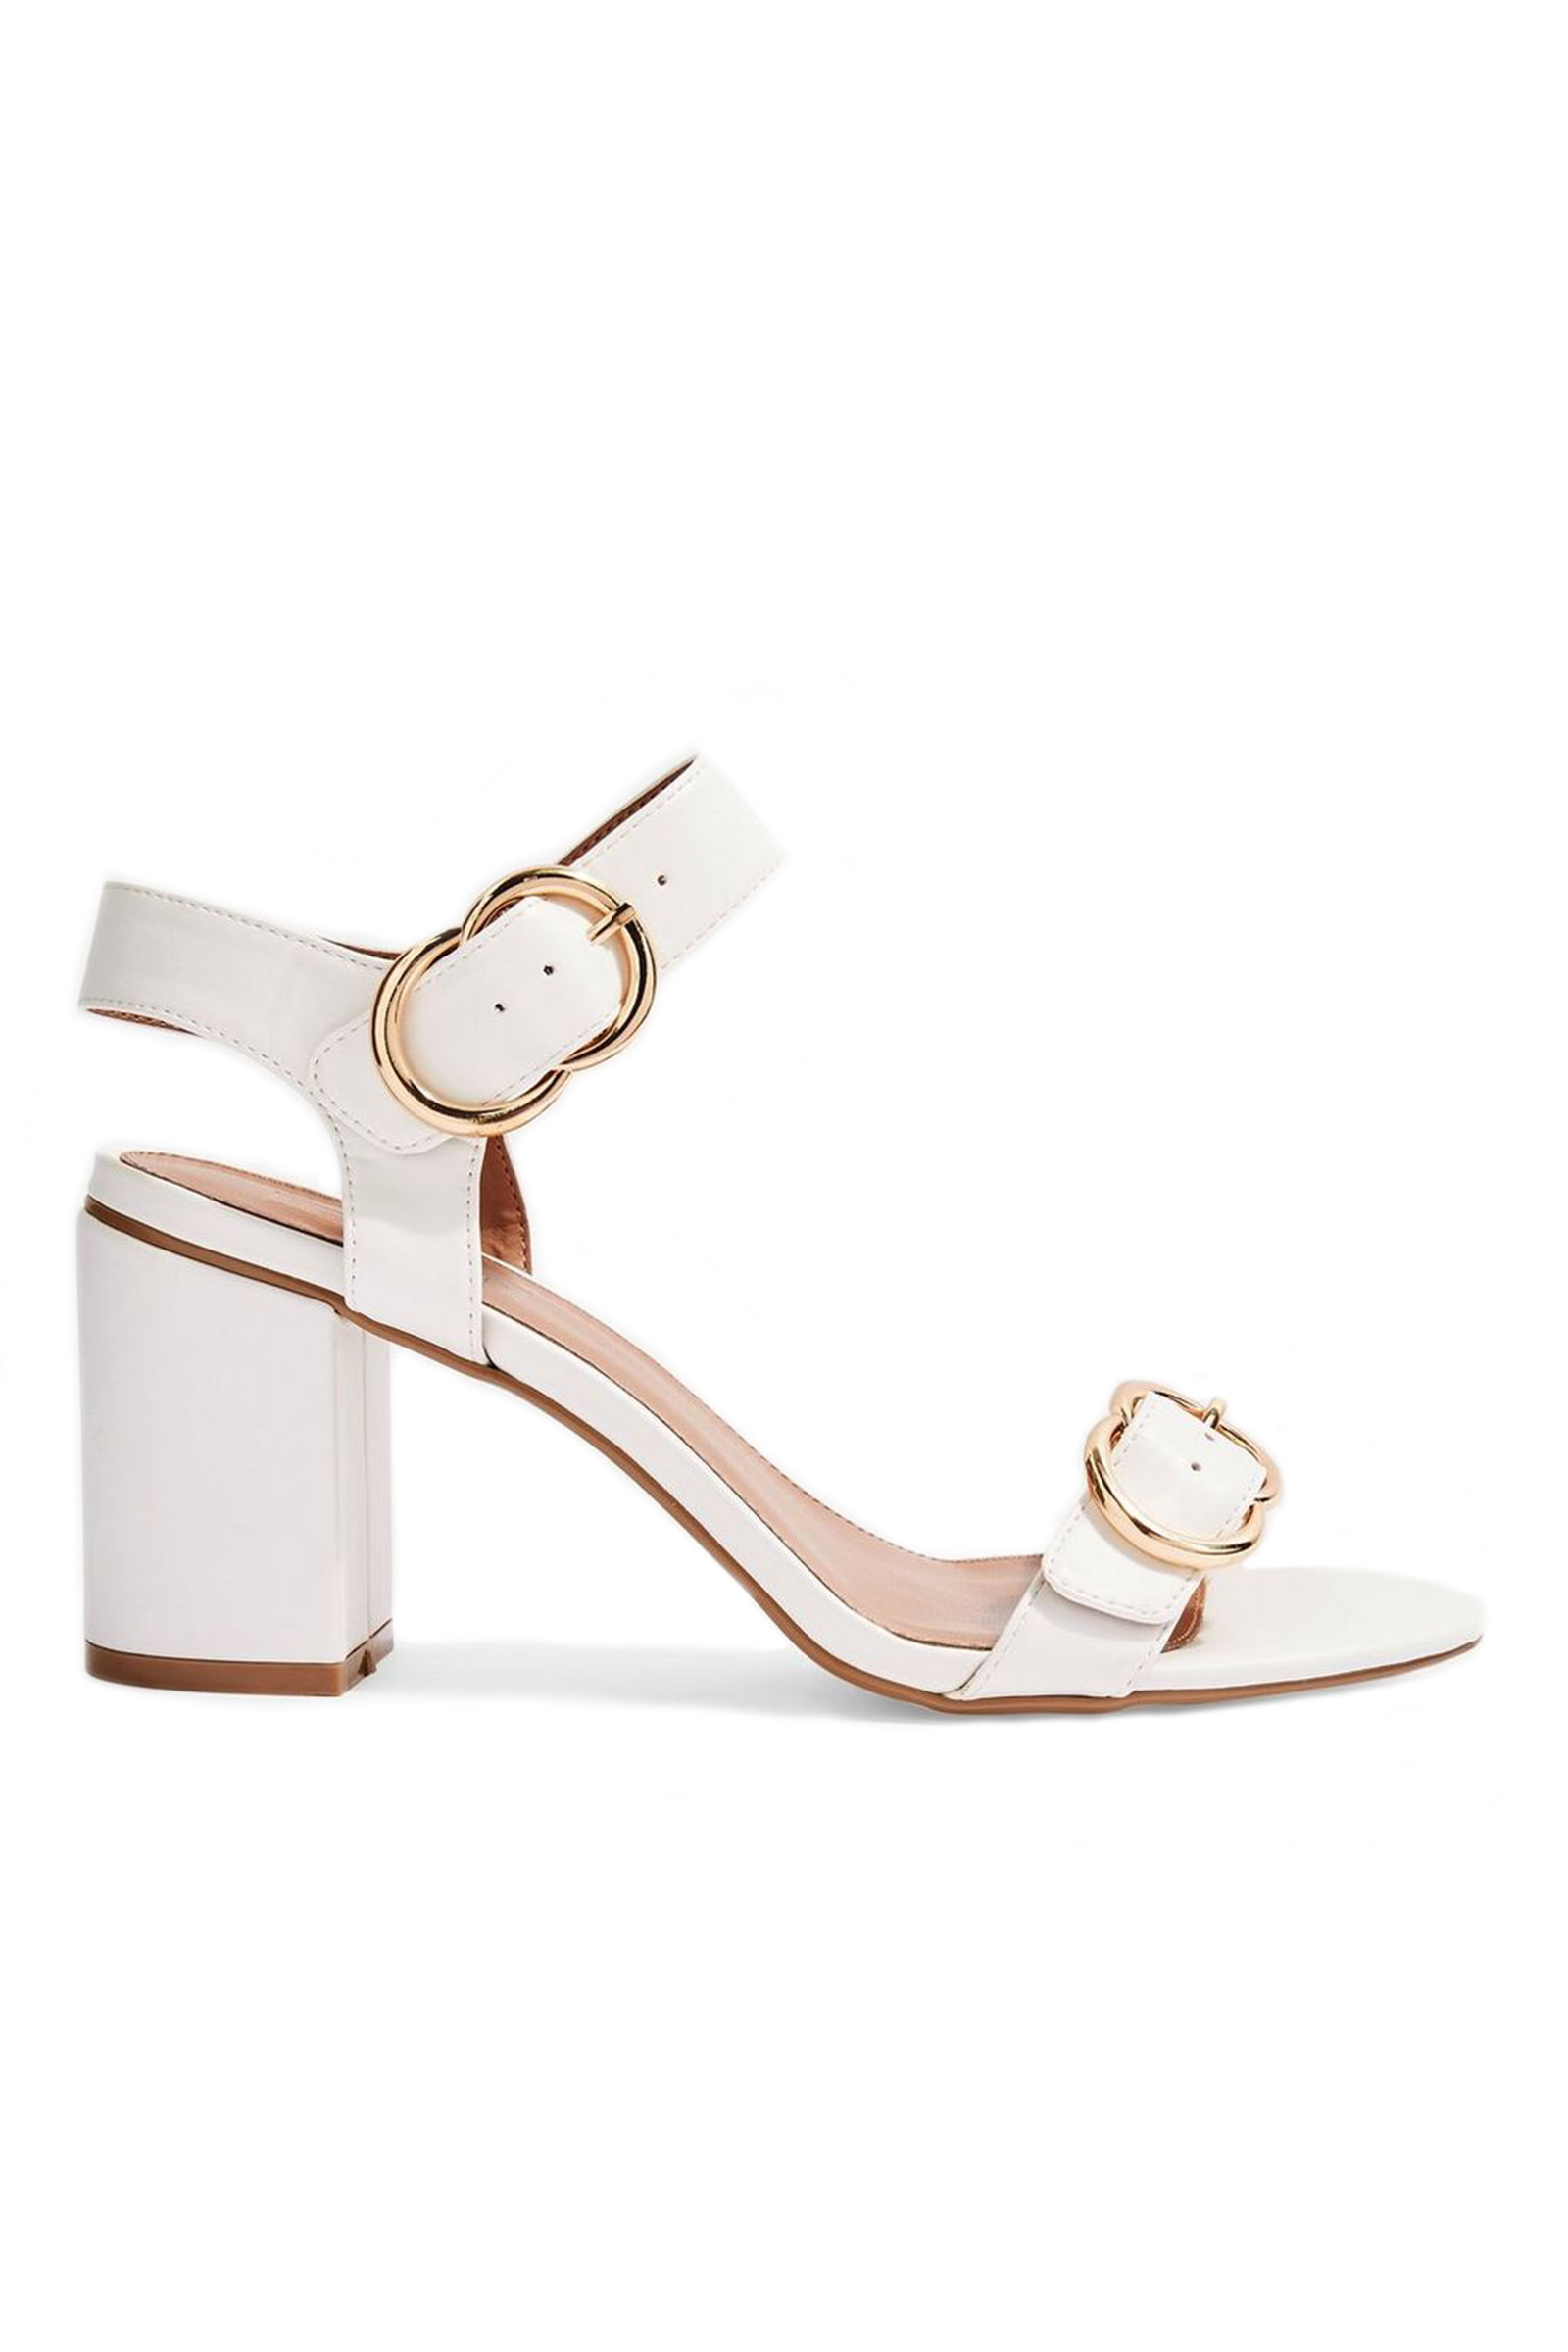 Topshop White Sandals